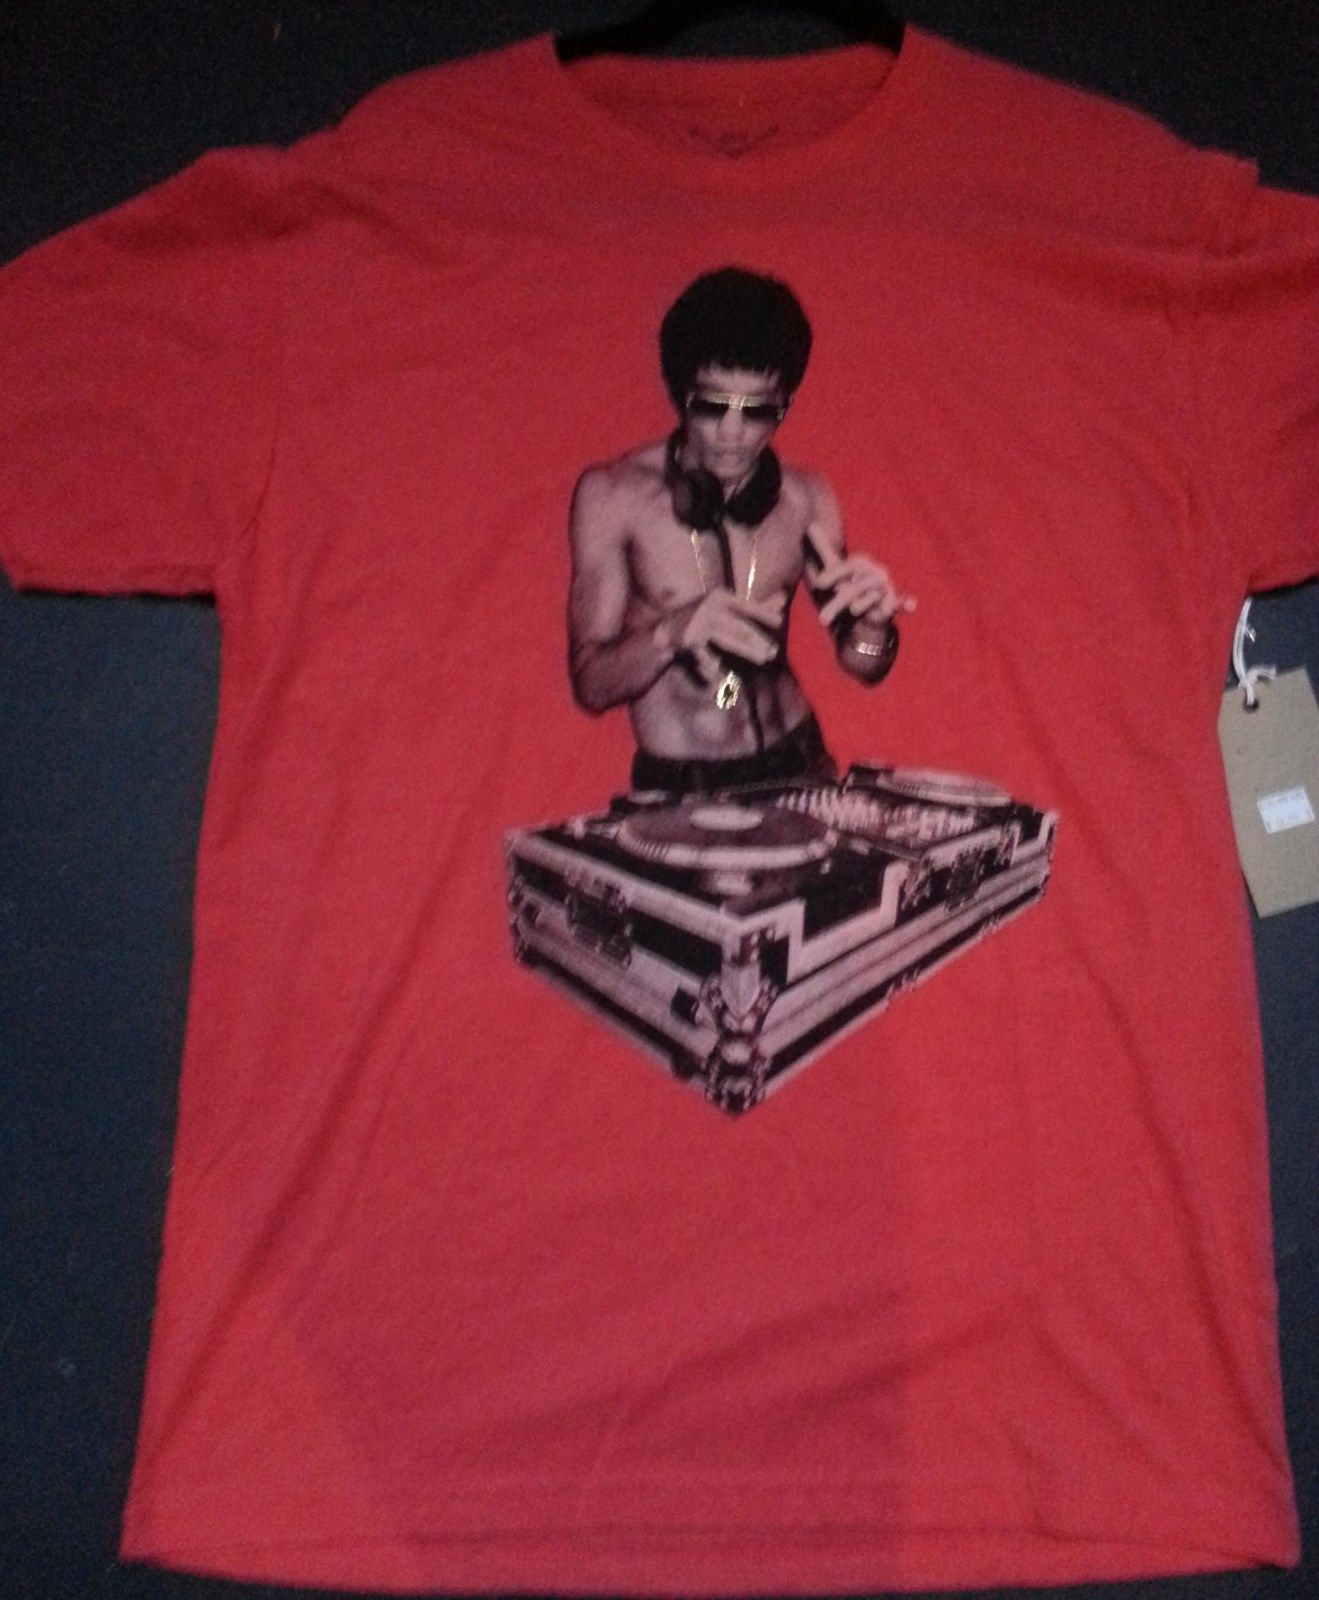 Bruce Lee DJ T shirt Brighter Red Special Edition Large